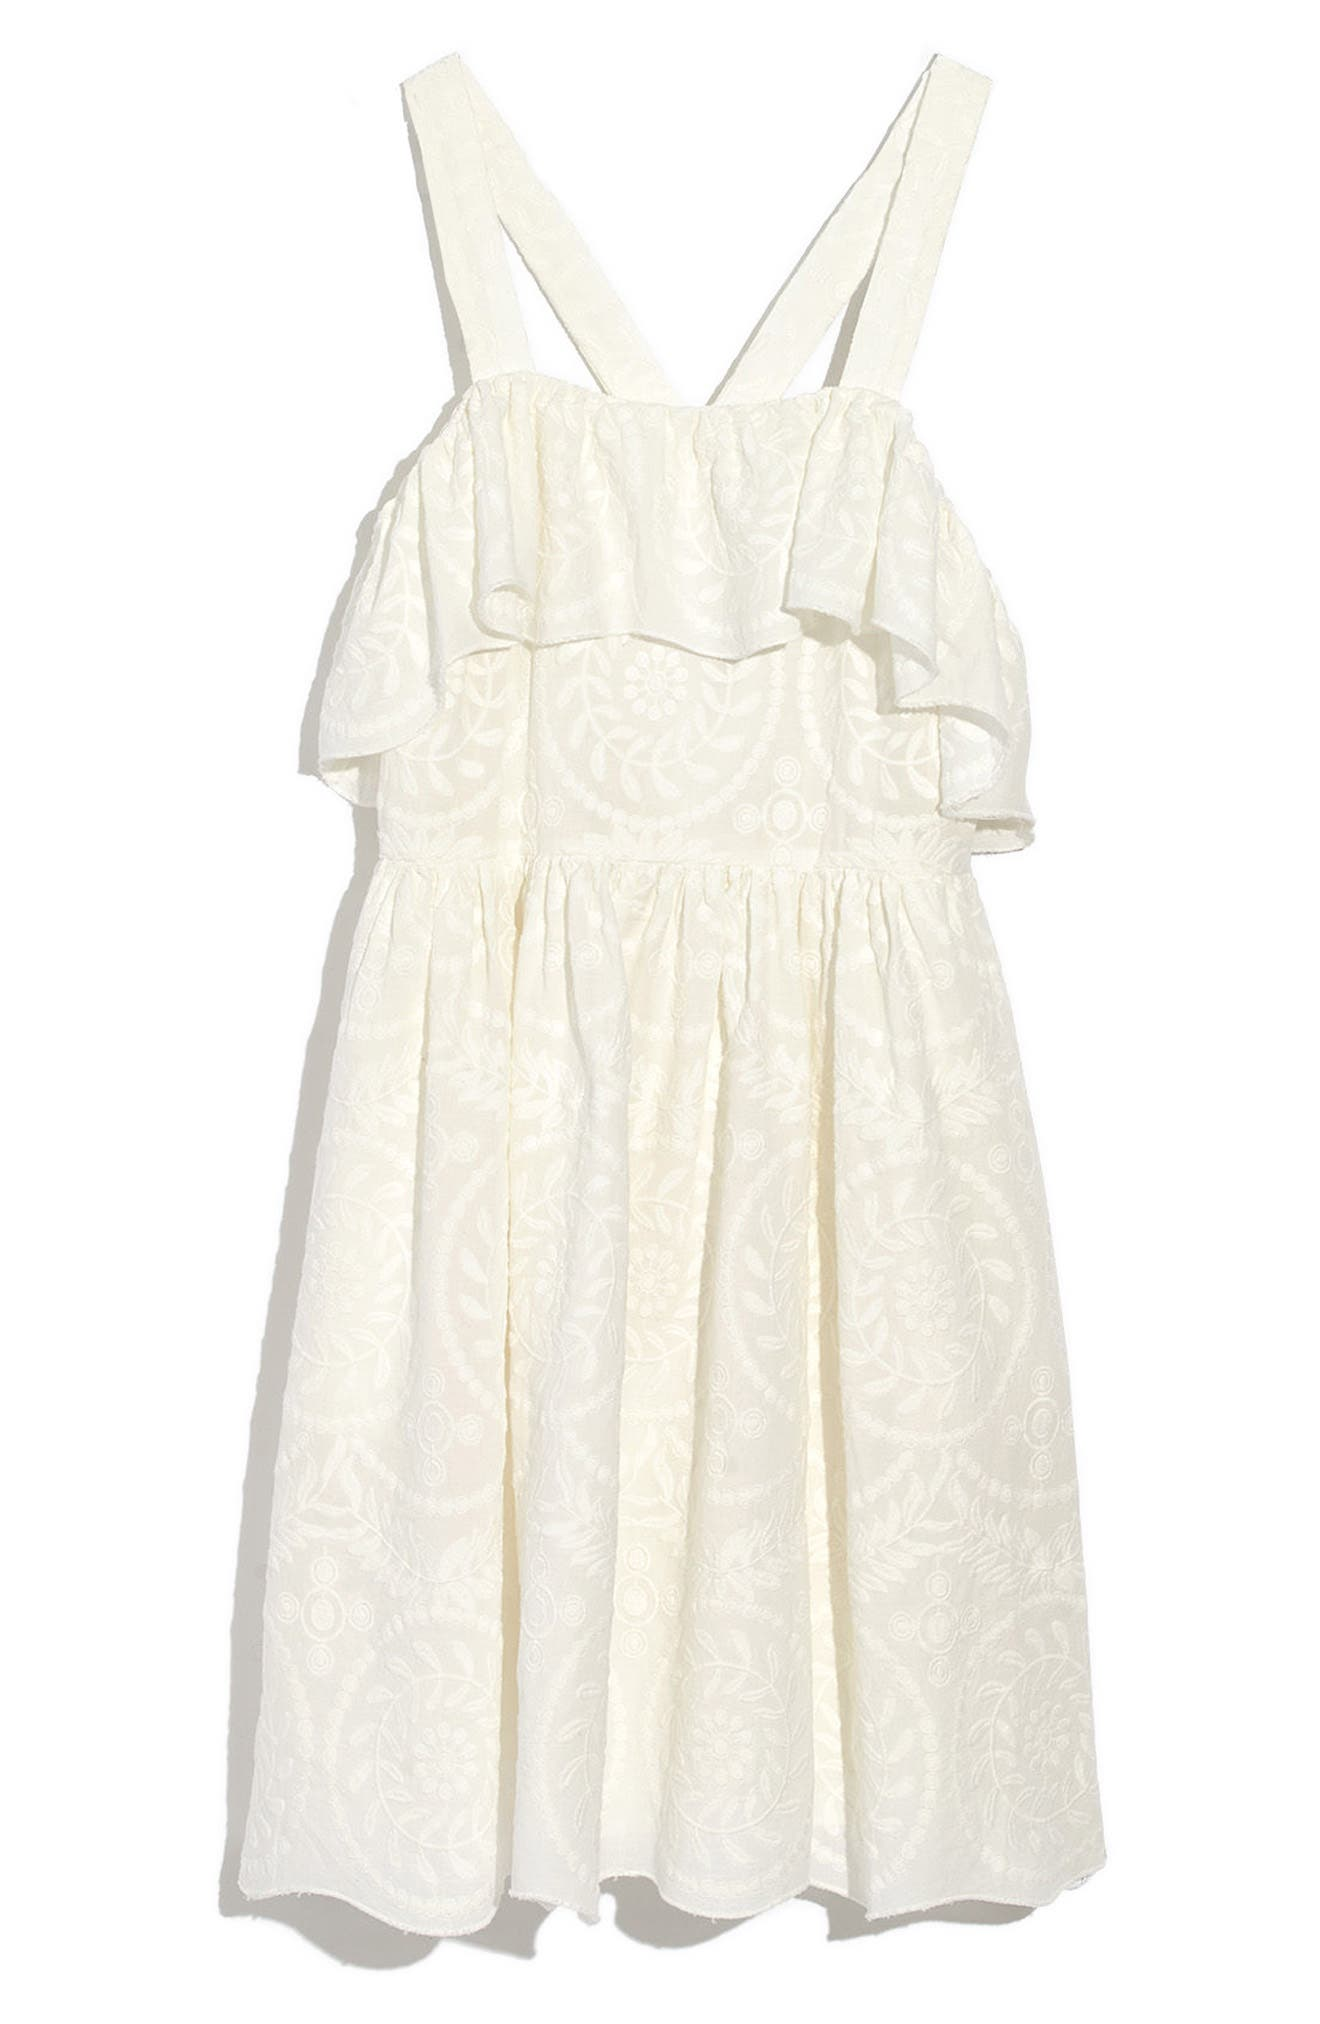 Embroidered Apron Ruffle Dress,                             Alternate thumbnail 3, color,                             100